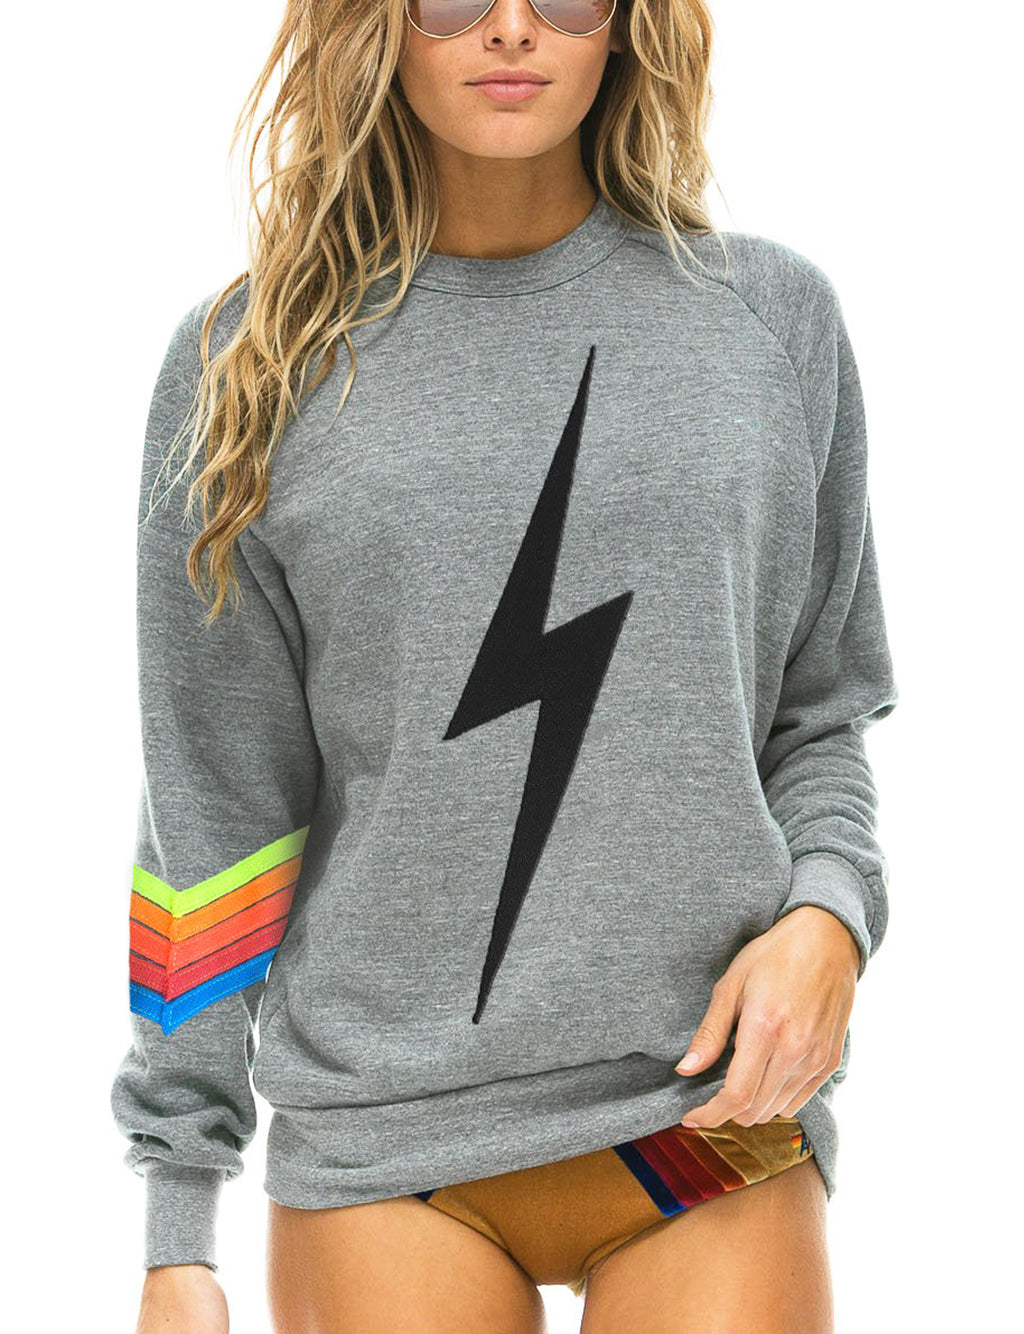 Aviator Nation Bolt Stitch Chevron Crew Sweatshirt in Heather/Neon